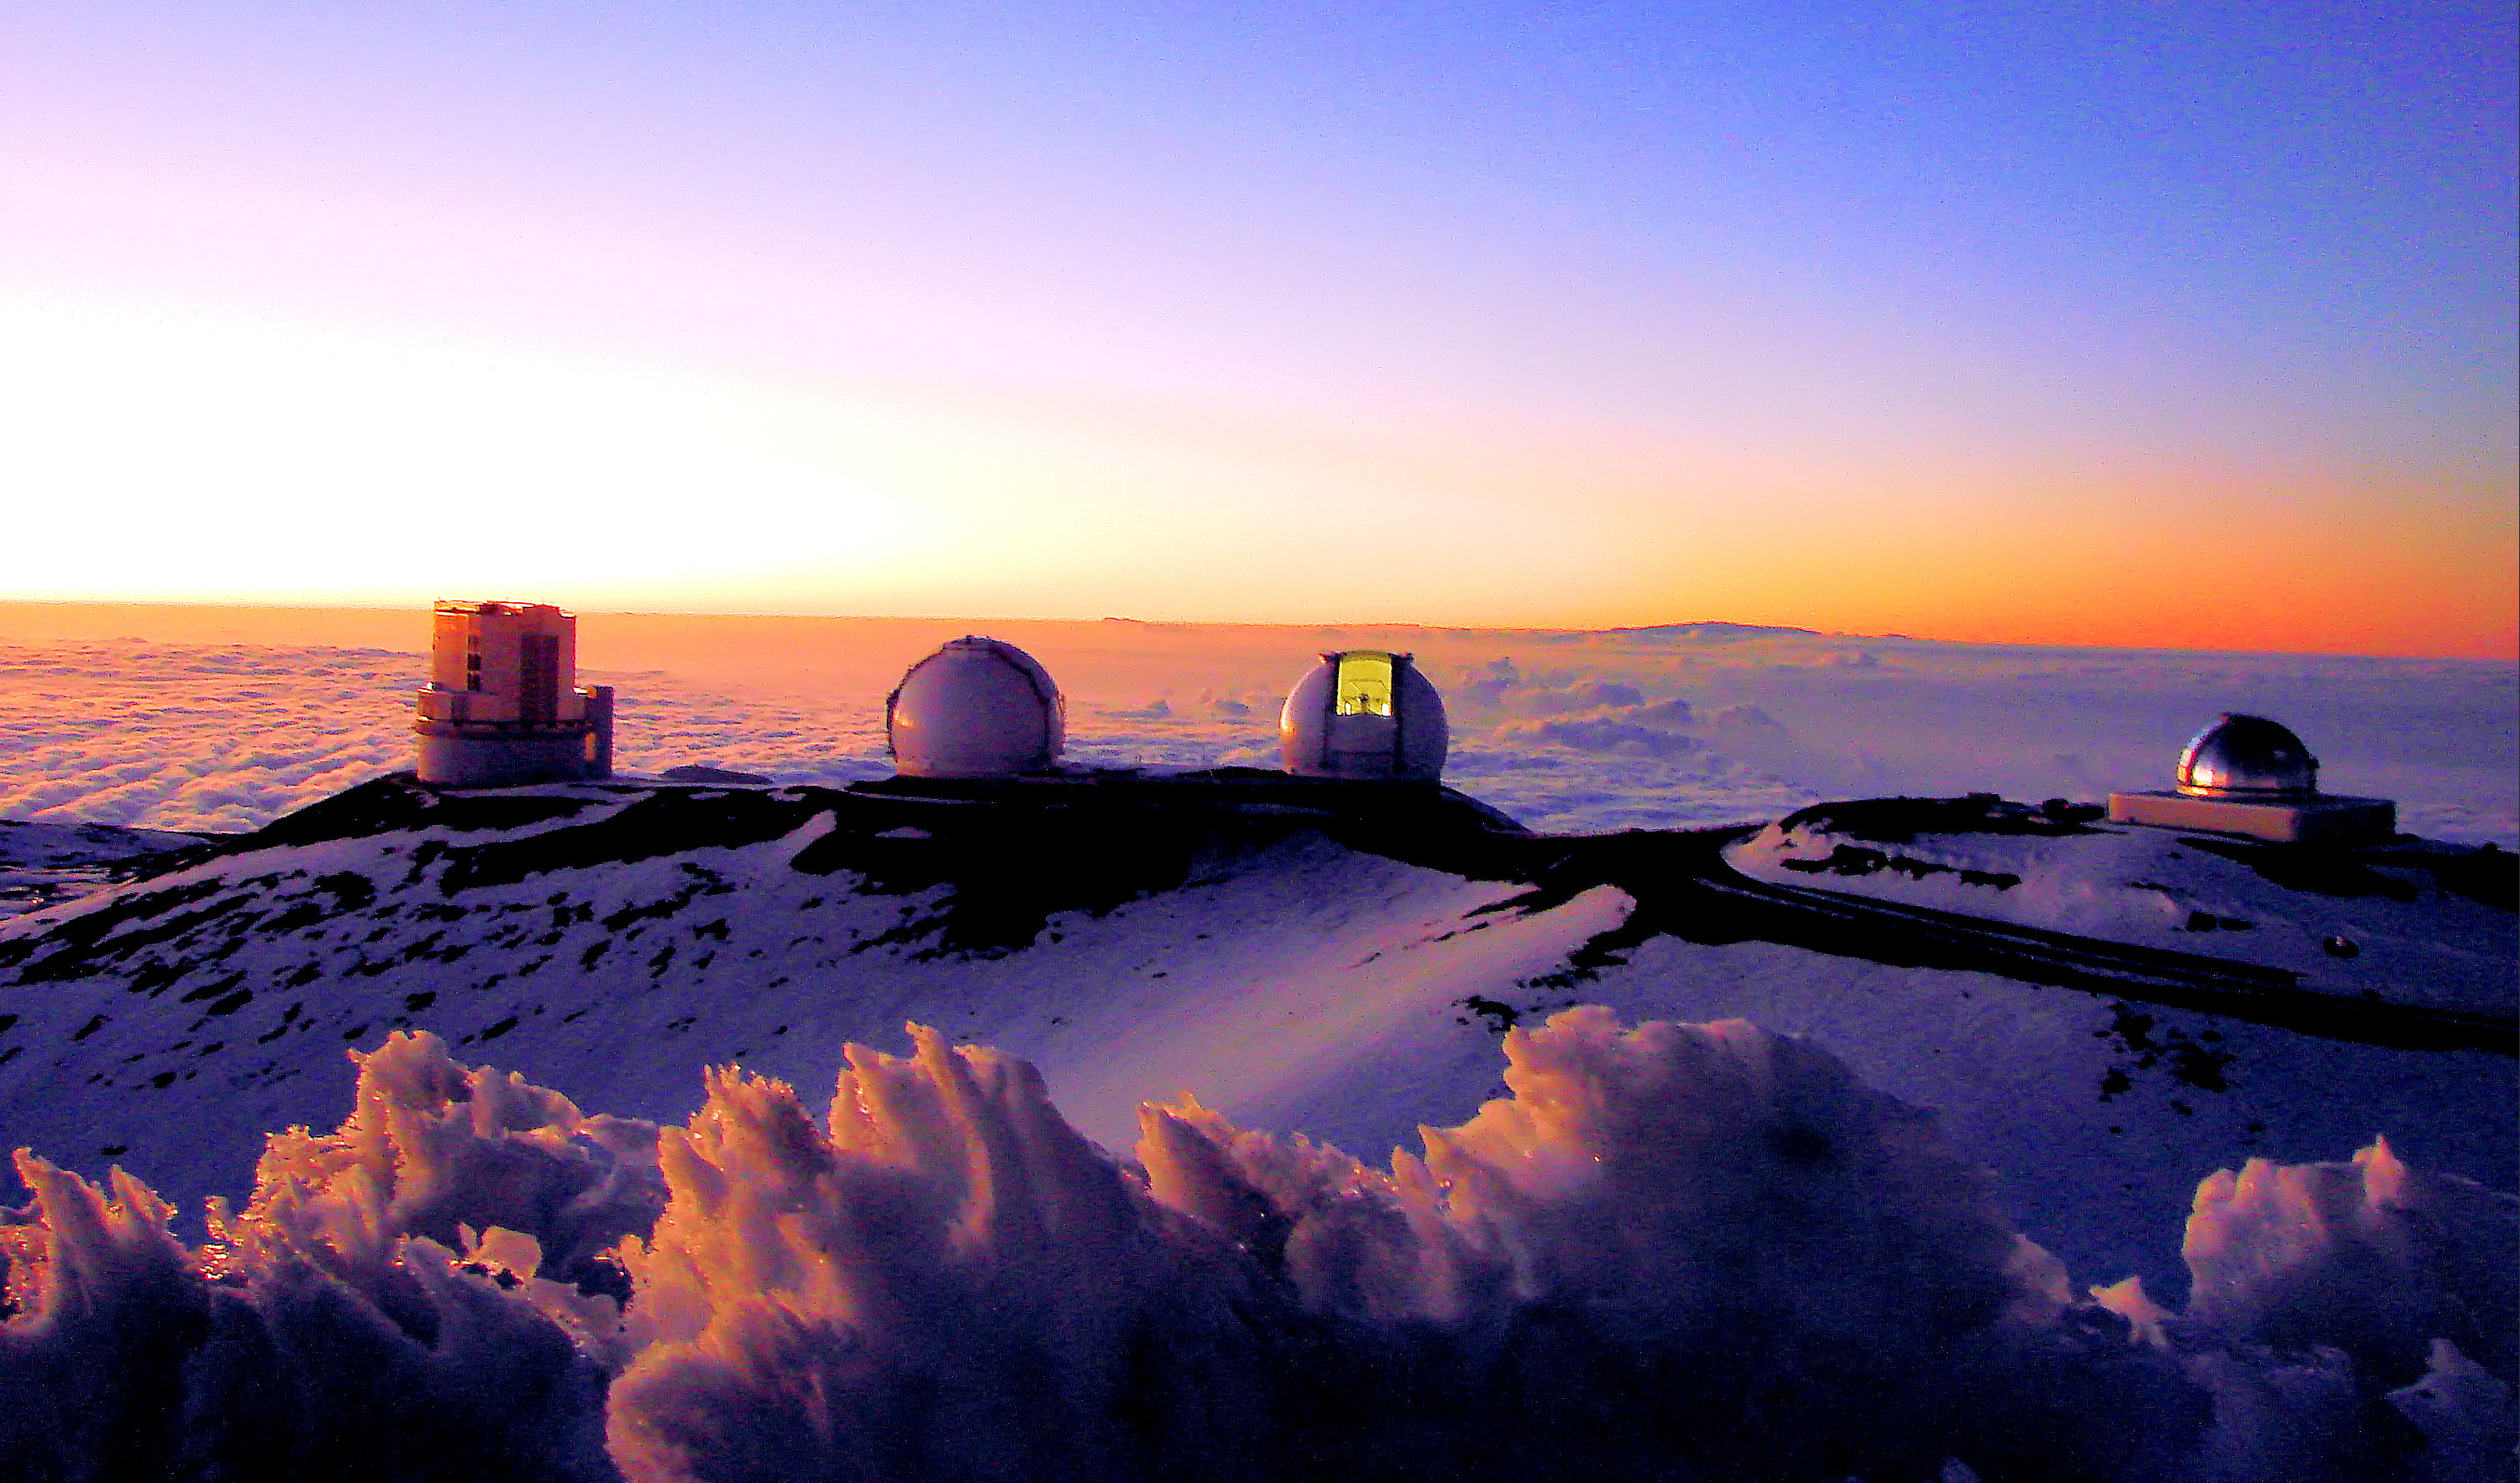 Maunakea observatories.